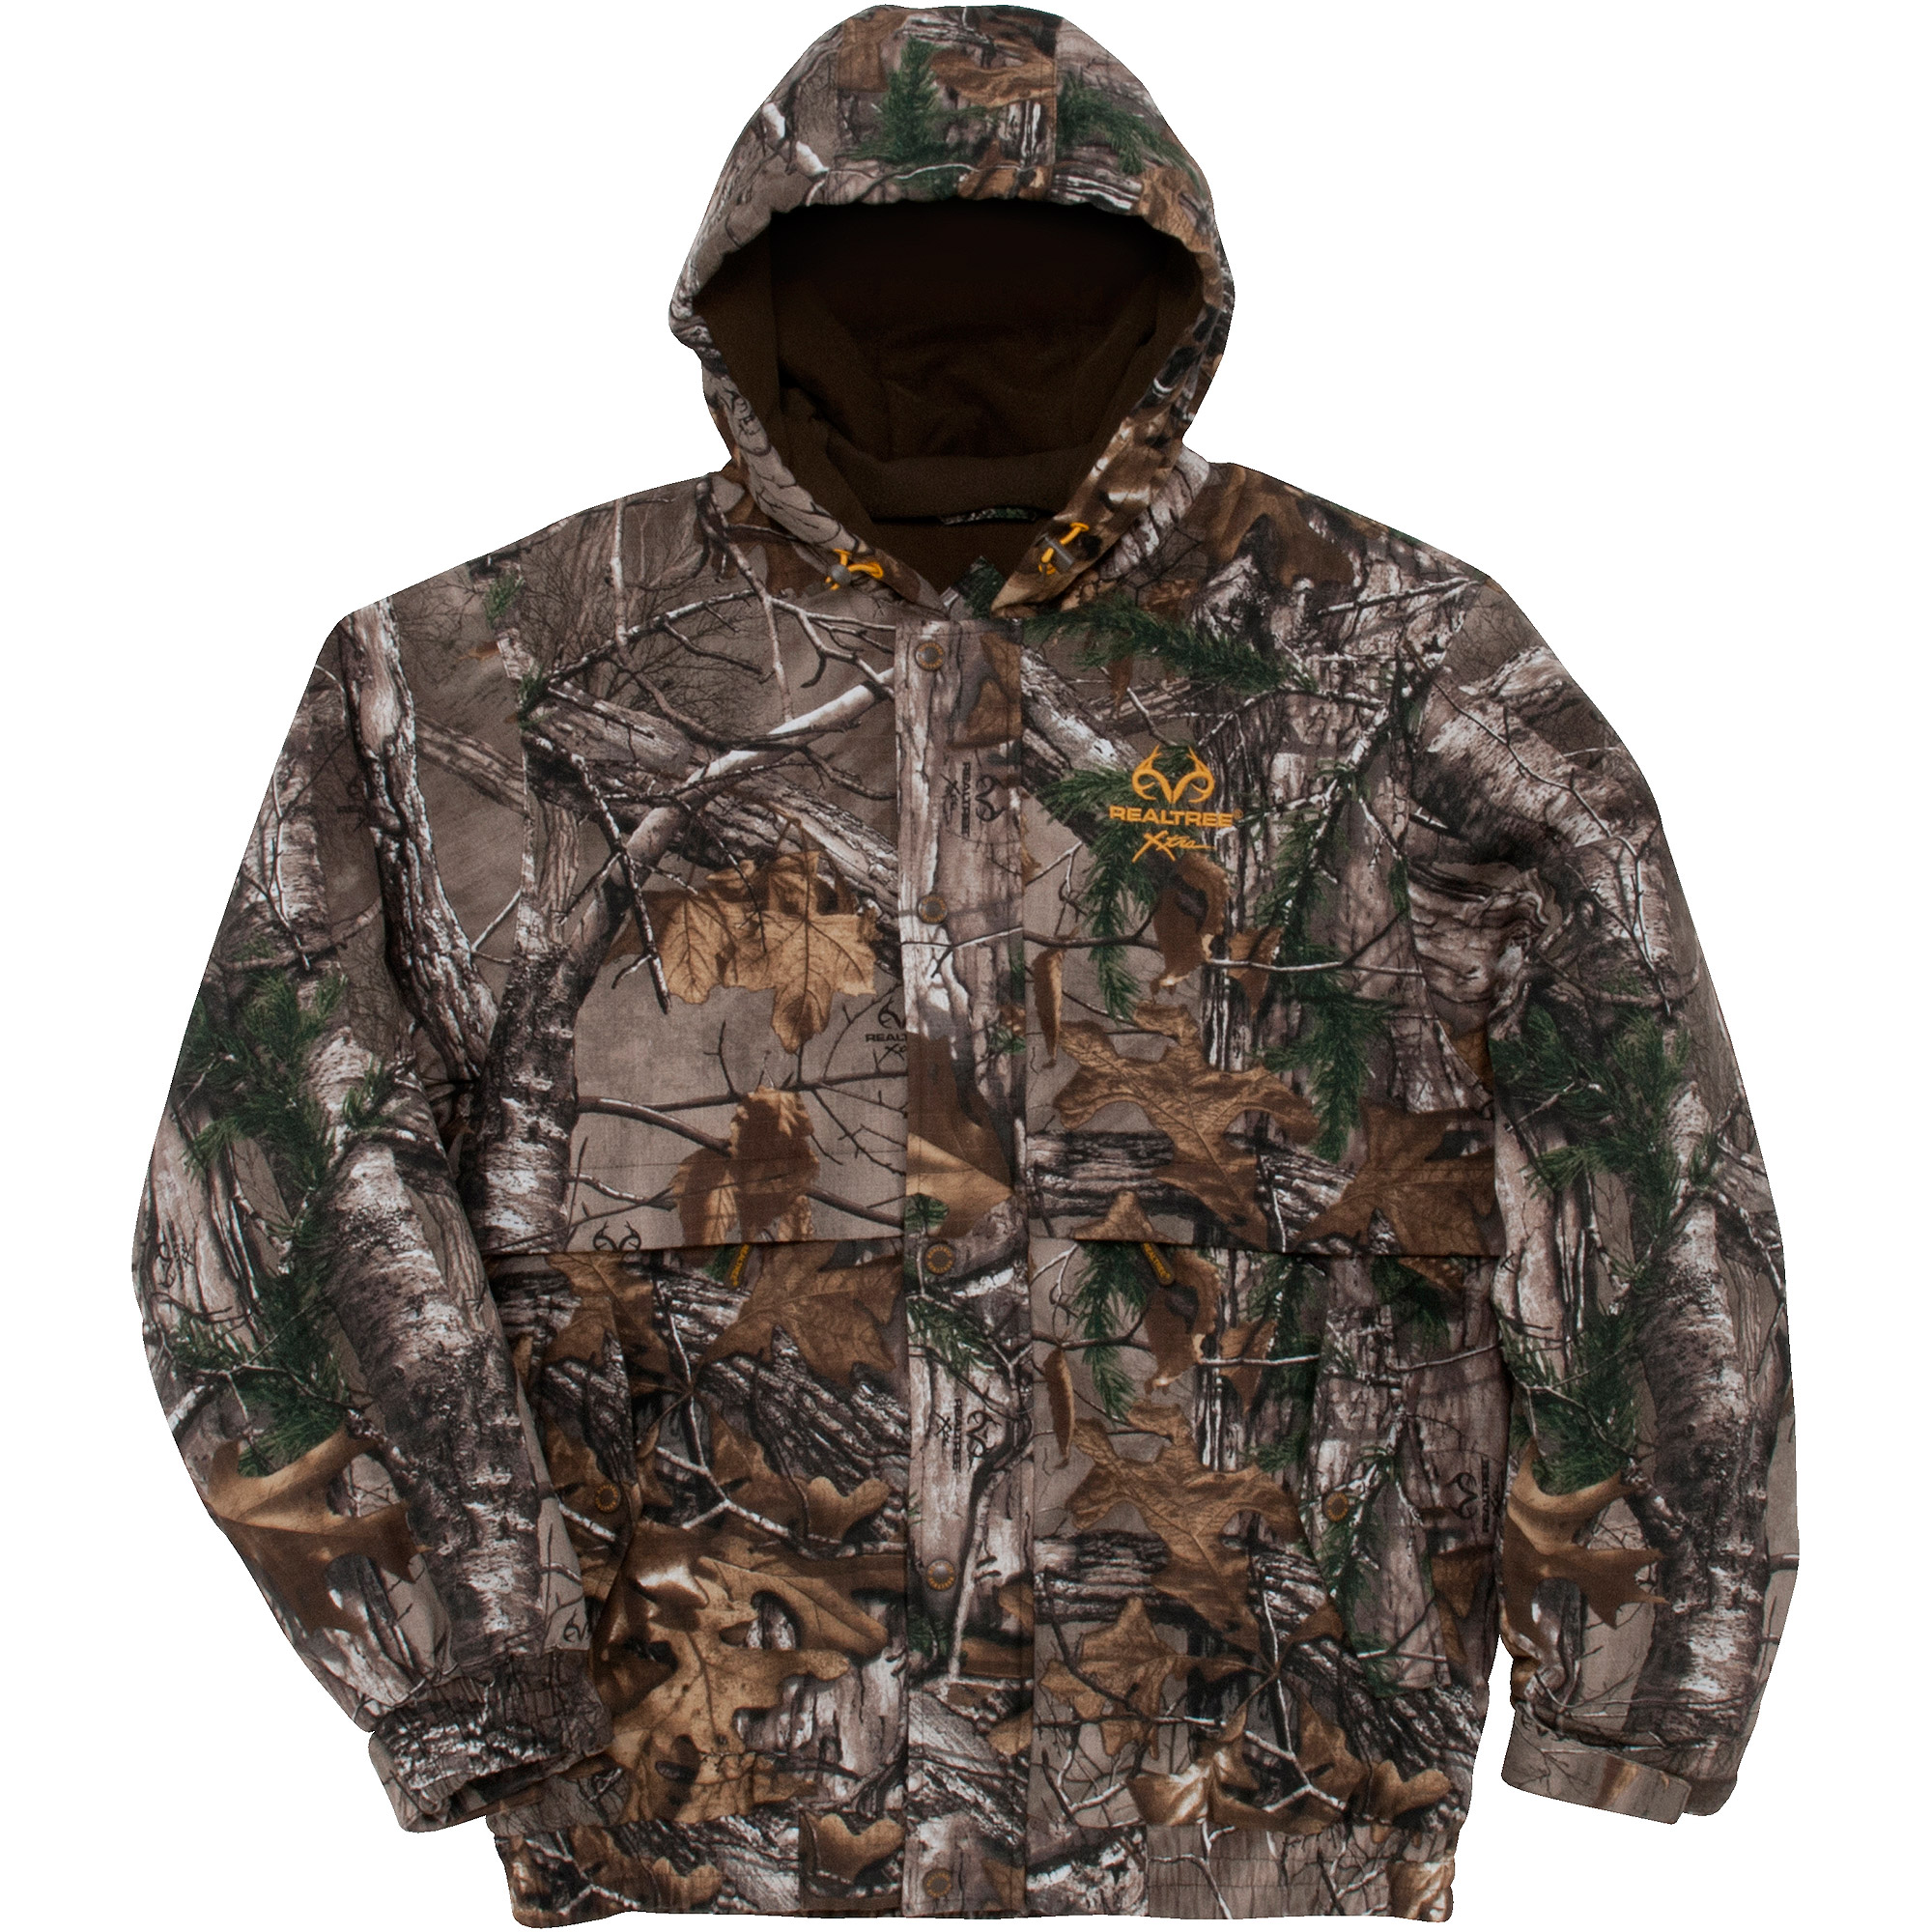 Realtree Xtra Men's Bomber Jacket